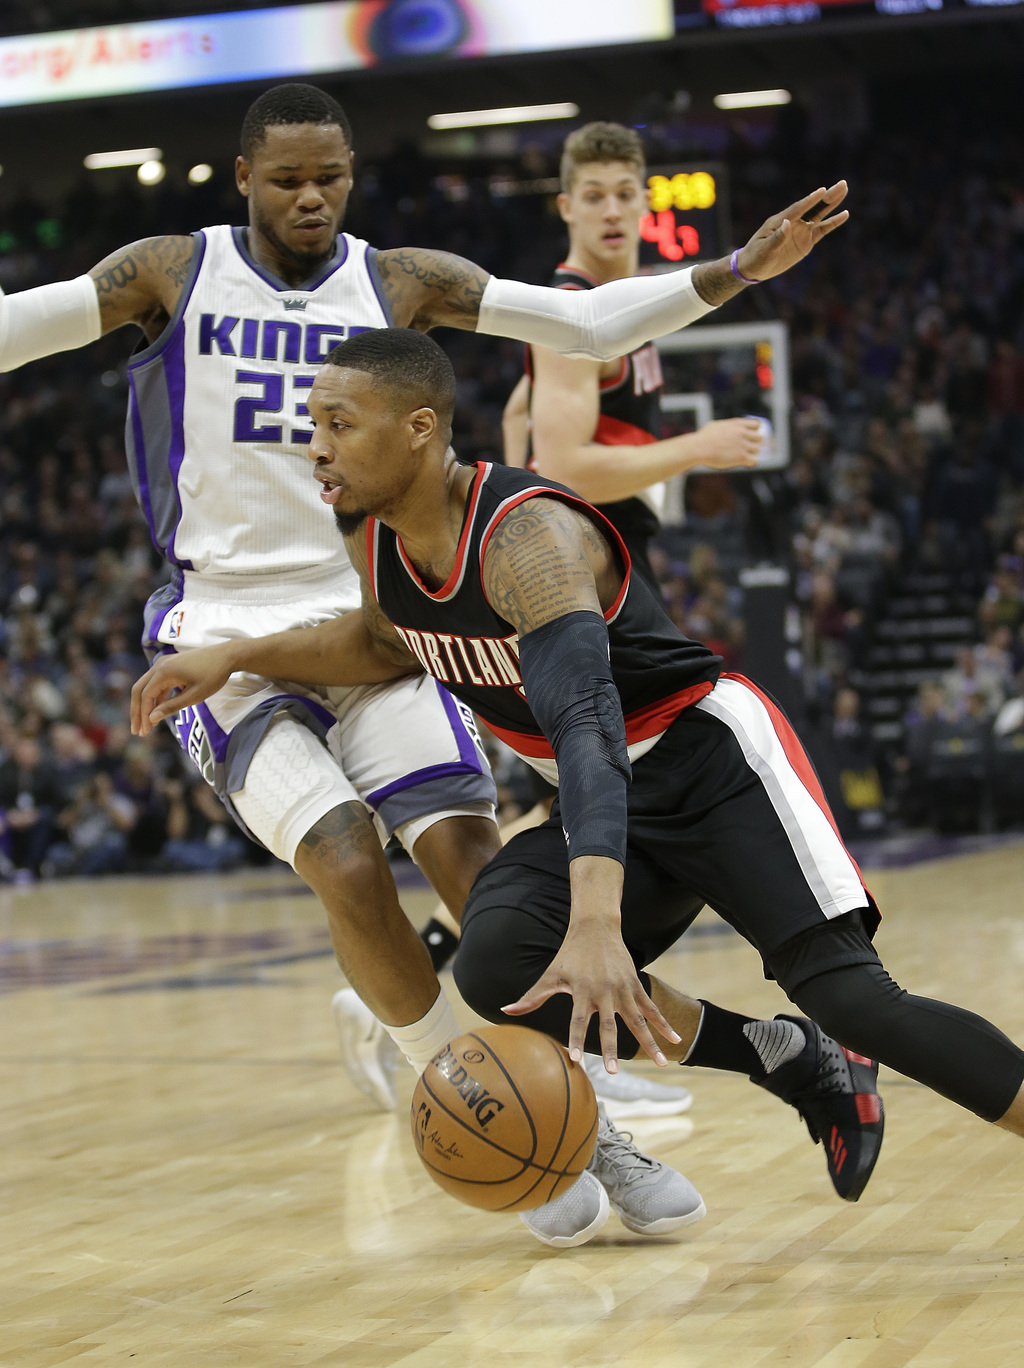 Portland Trail Blazers guard Damian Lillard, right, drives against Sacramento Kings guard Ben McLemore during the first quarter of an N...